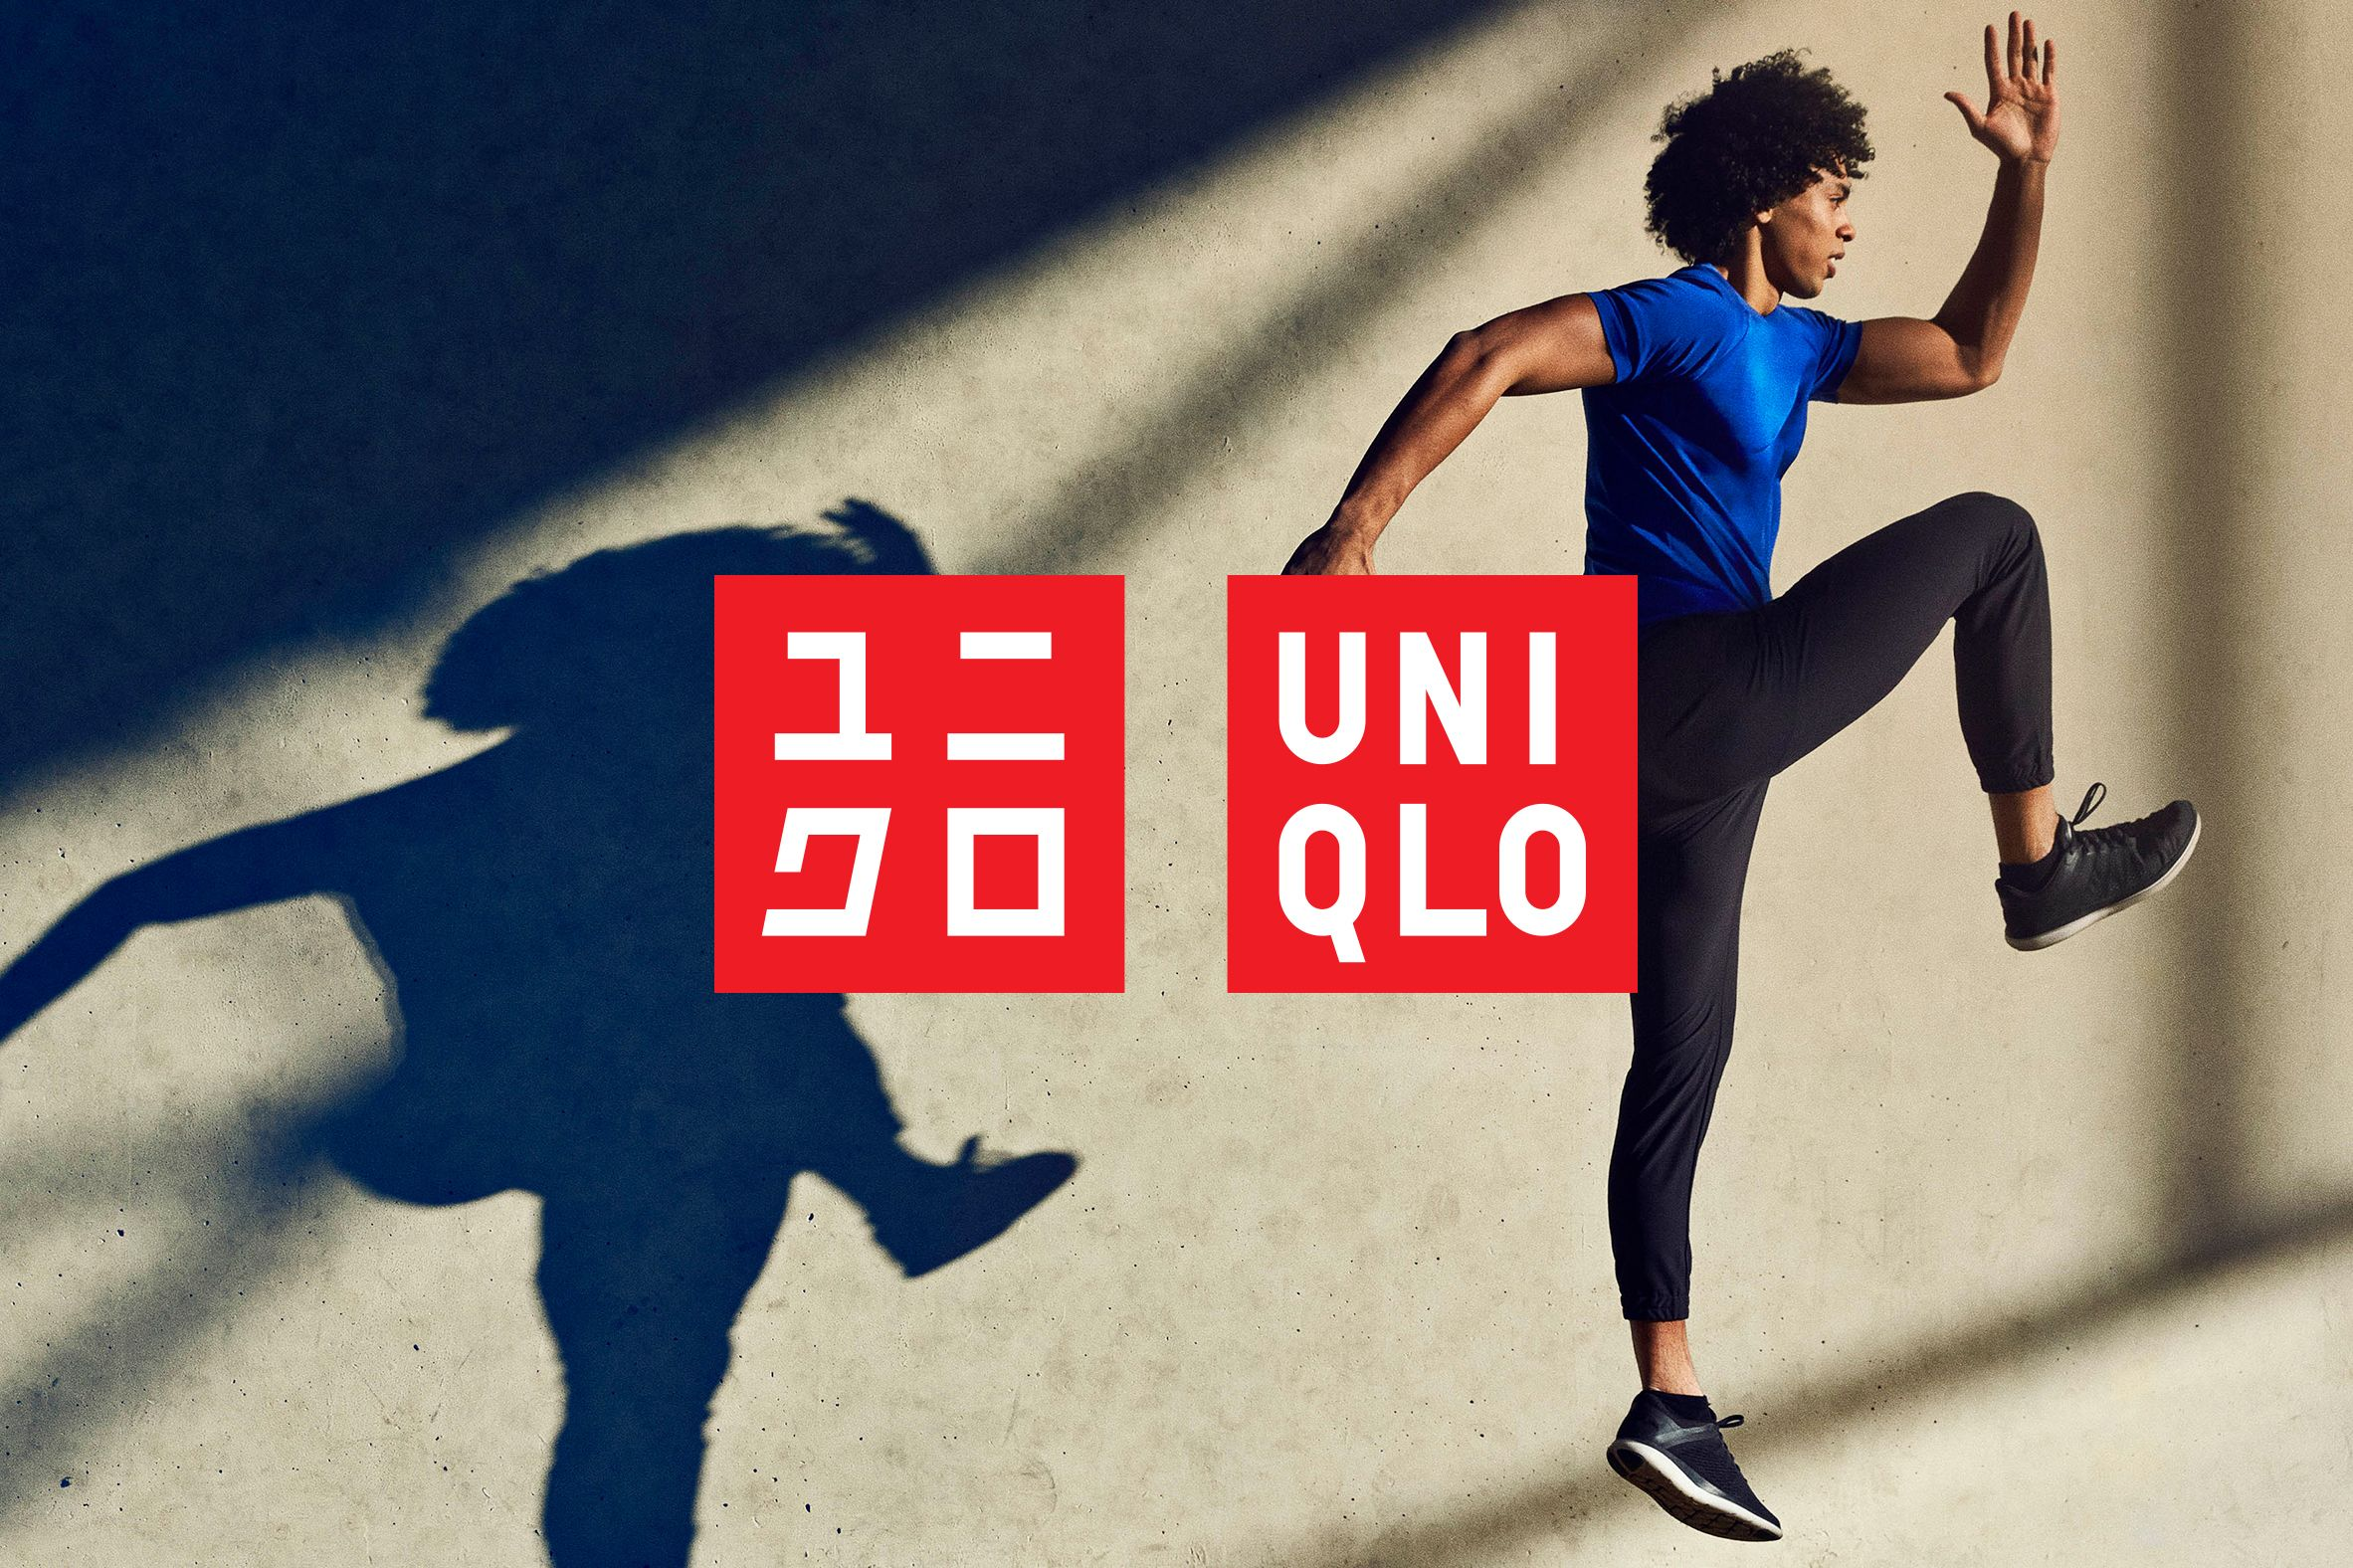 Uniqlo The Power of Simple